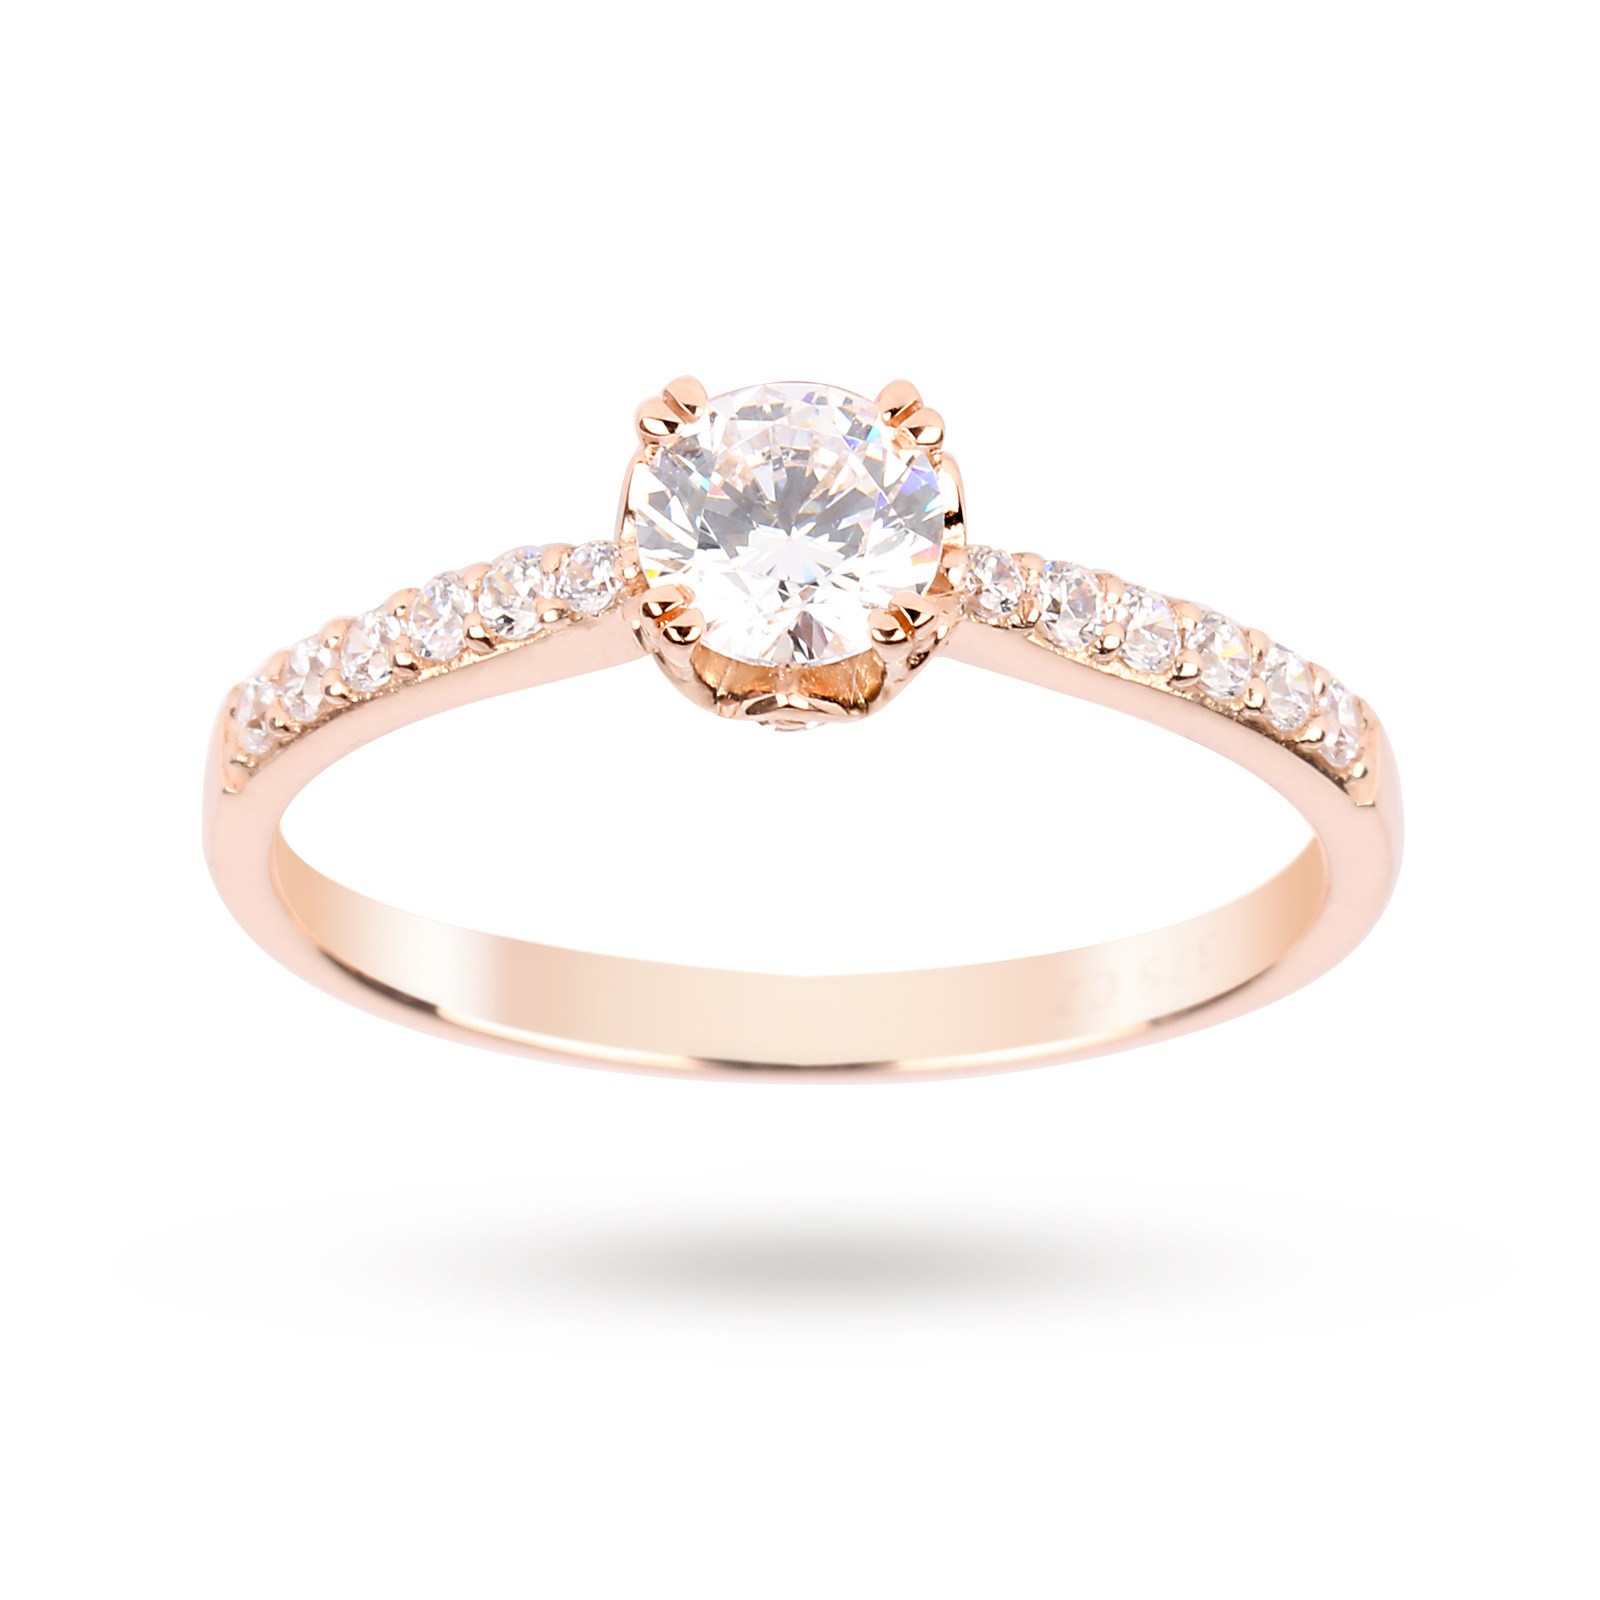 Cubic Zirconia Solitaire Ring in 9 Carat Rose Gold